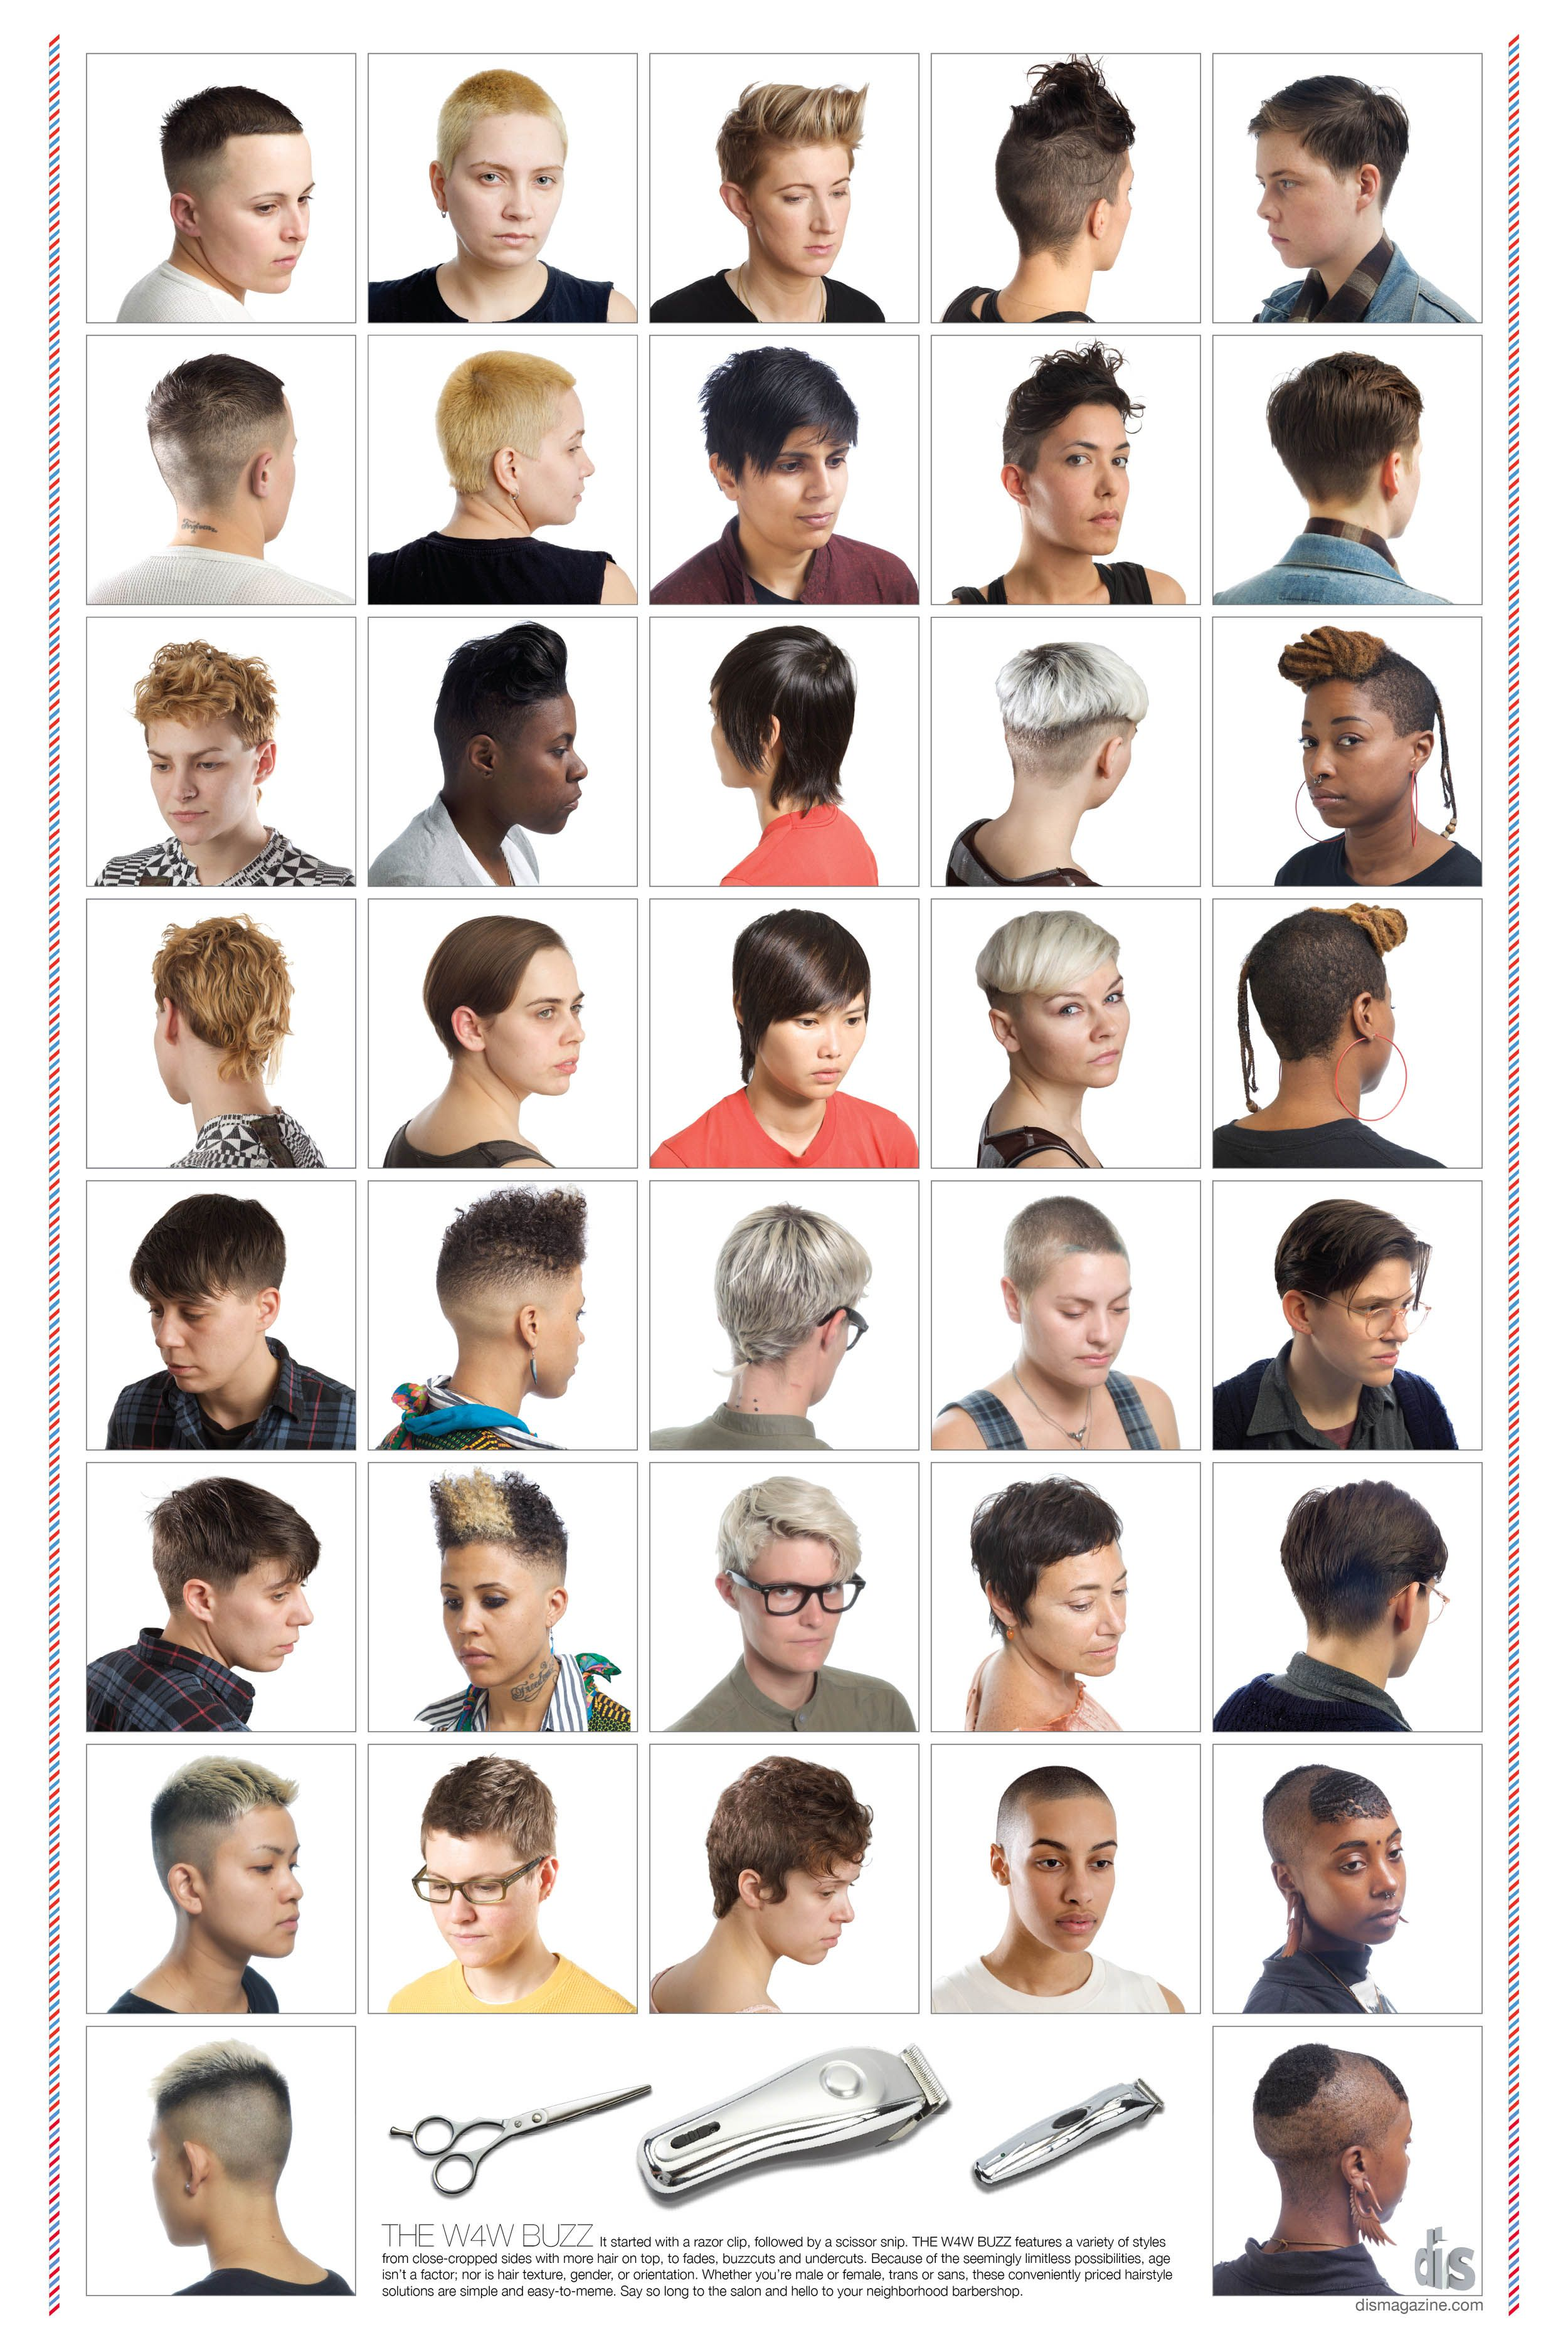 Lesbian visibility barbershop poster by DIS Hair